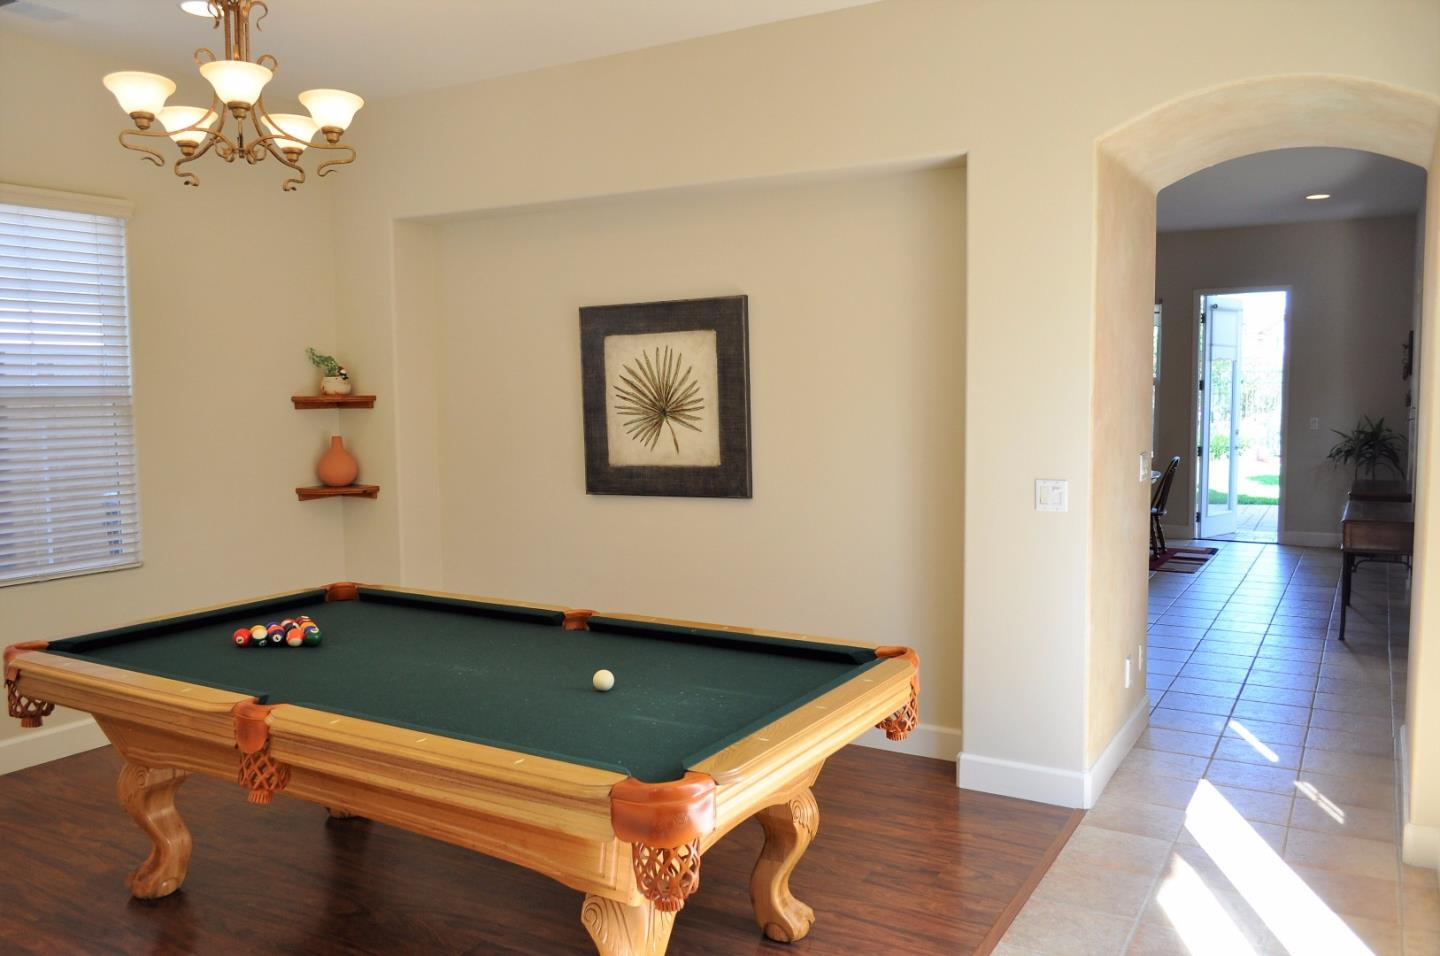 Additional photo for property listing at 2610 Club Drive 2610 Club Drive Gilroy, California 95020 United States